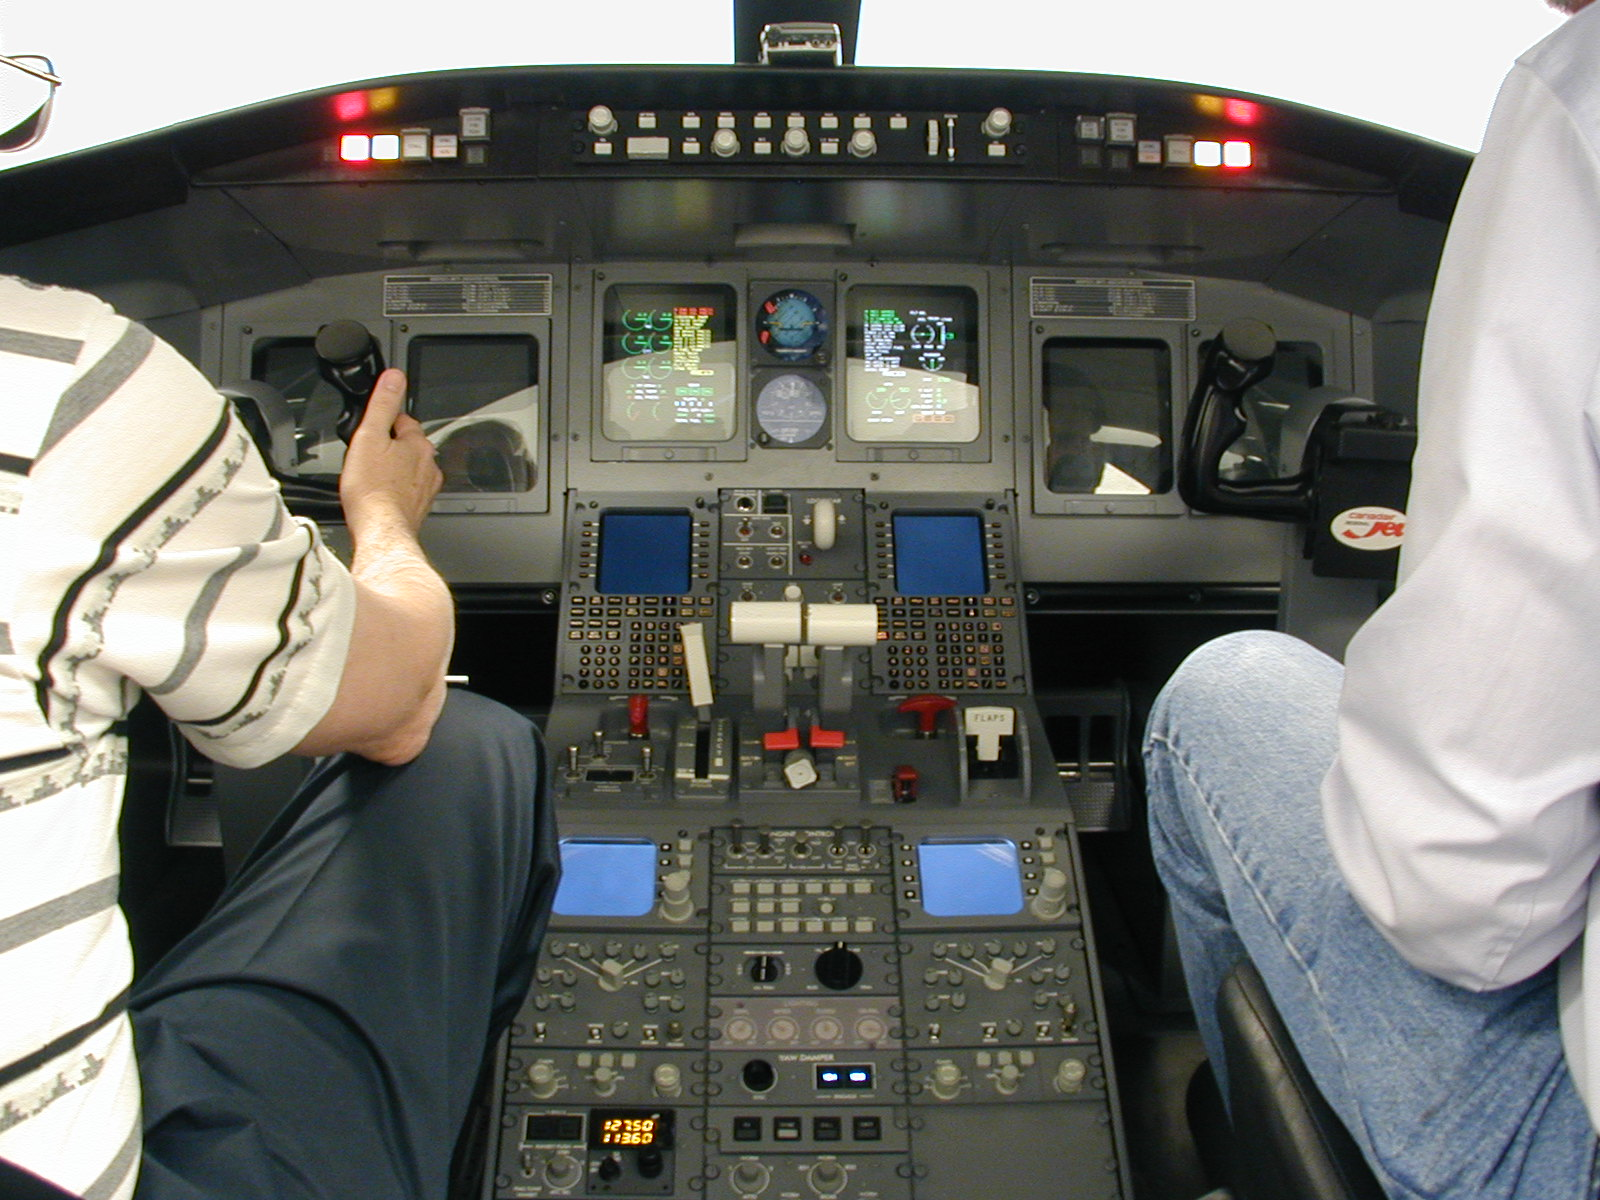 Engineers integrating CRJ-700